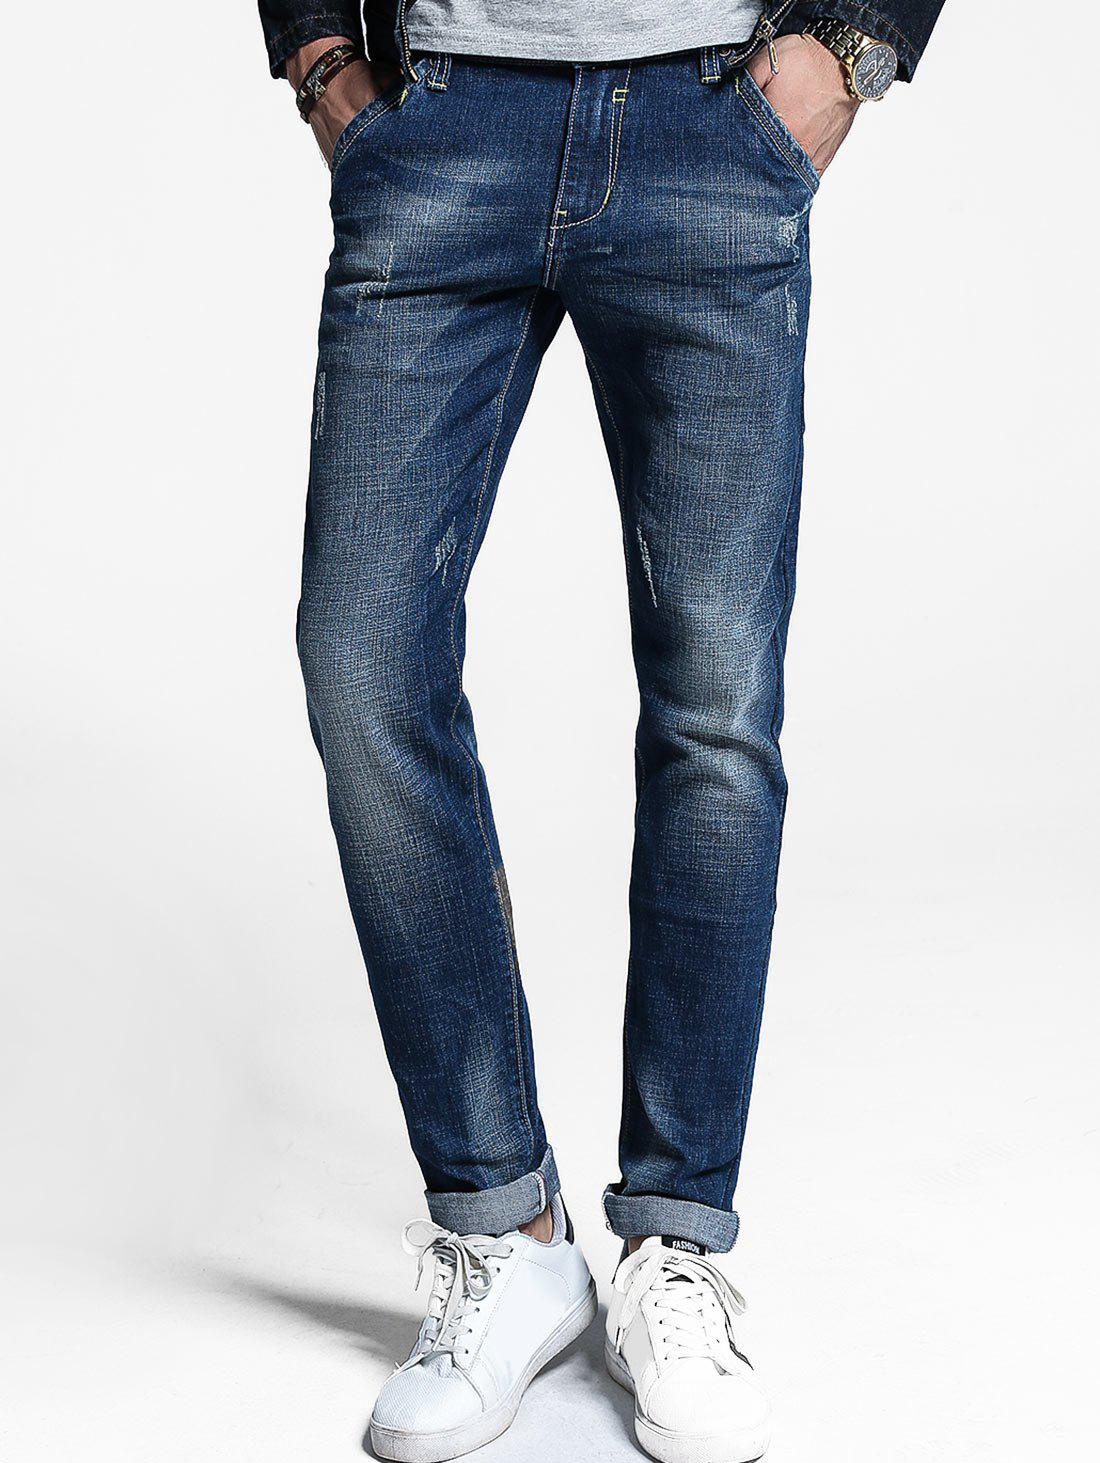 Abercrombie Fitch - Denim Bleu 34